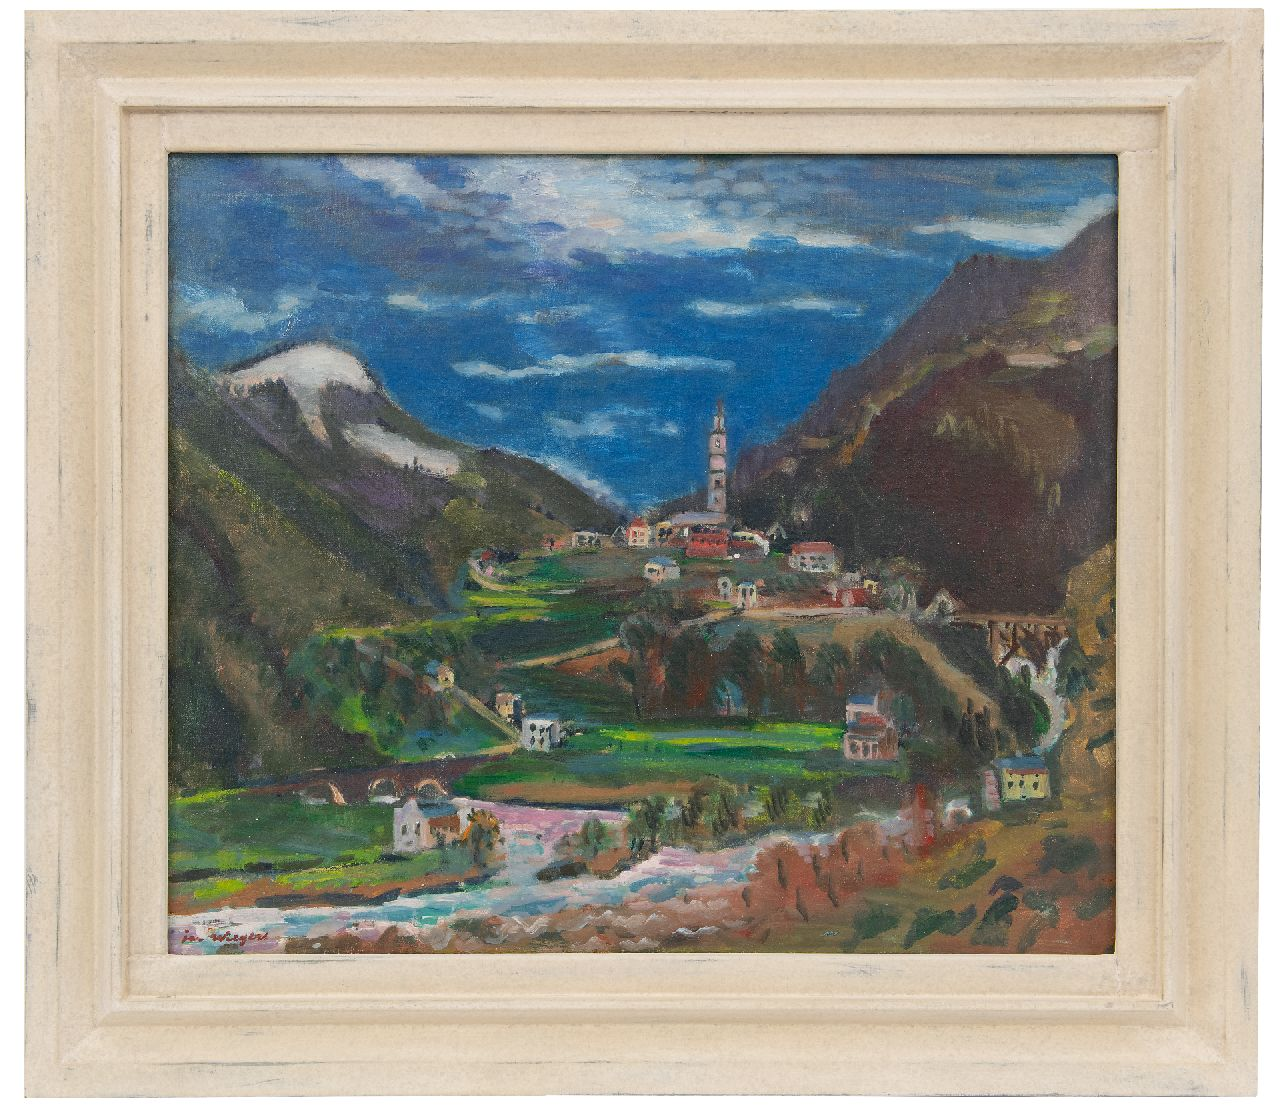 Wiegers J.  | Jan Wiegers | Paintings offered for sale | A view of Tegna, Ticino, Switzerland, oil on canvas 61.5 x 73.4 cm, signed l.l. and painted ca. 1949